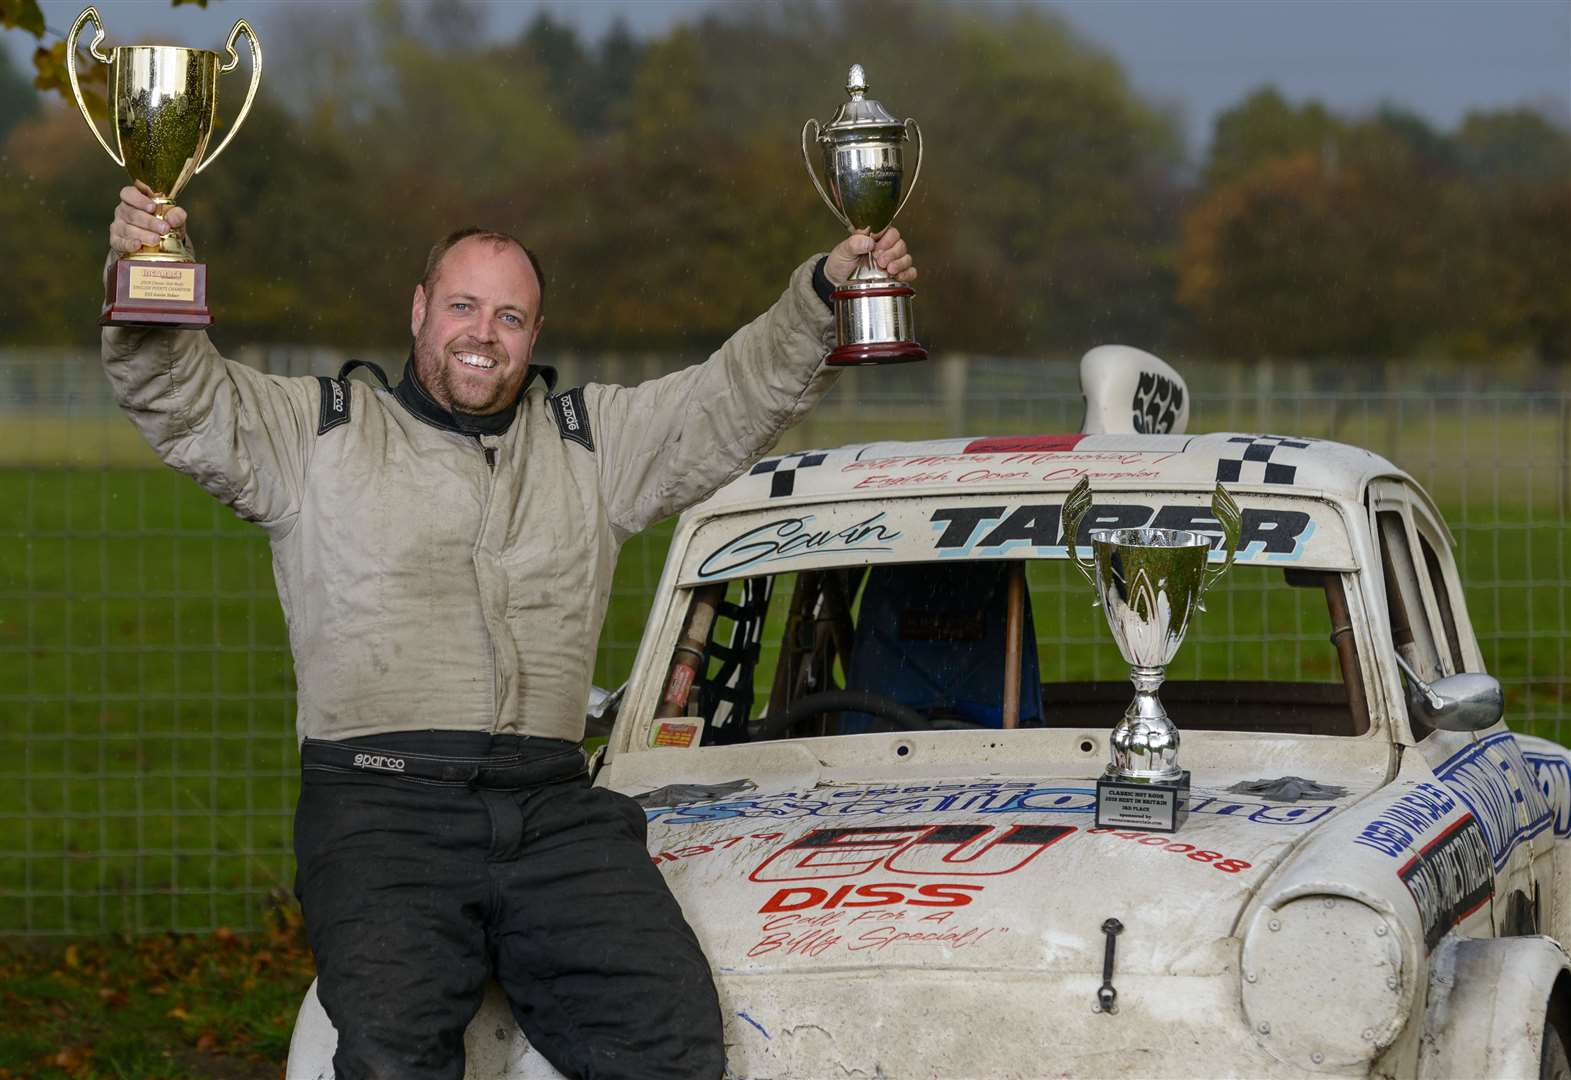 Roydon-based racer mounts successful defence of his title